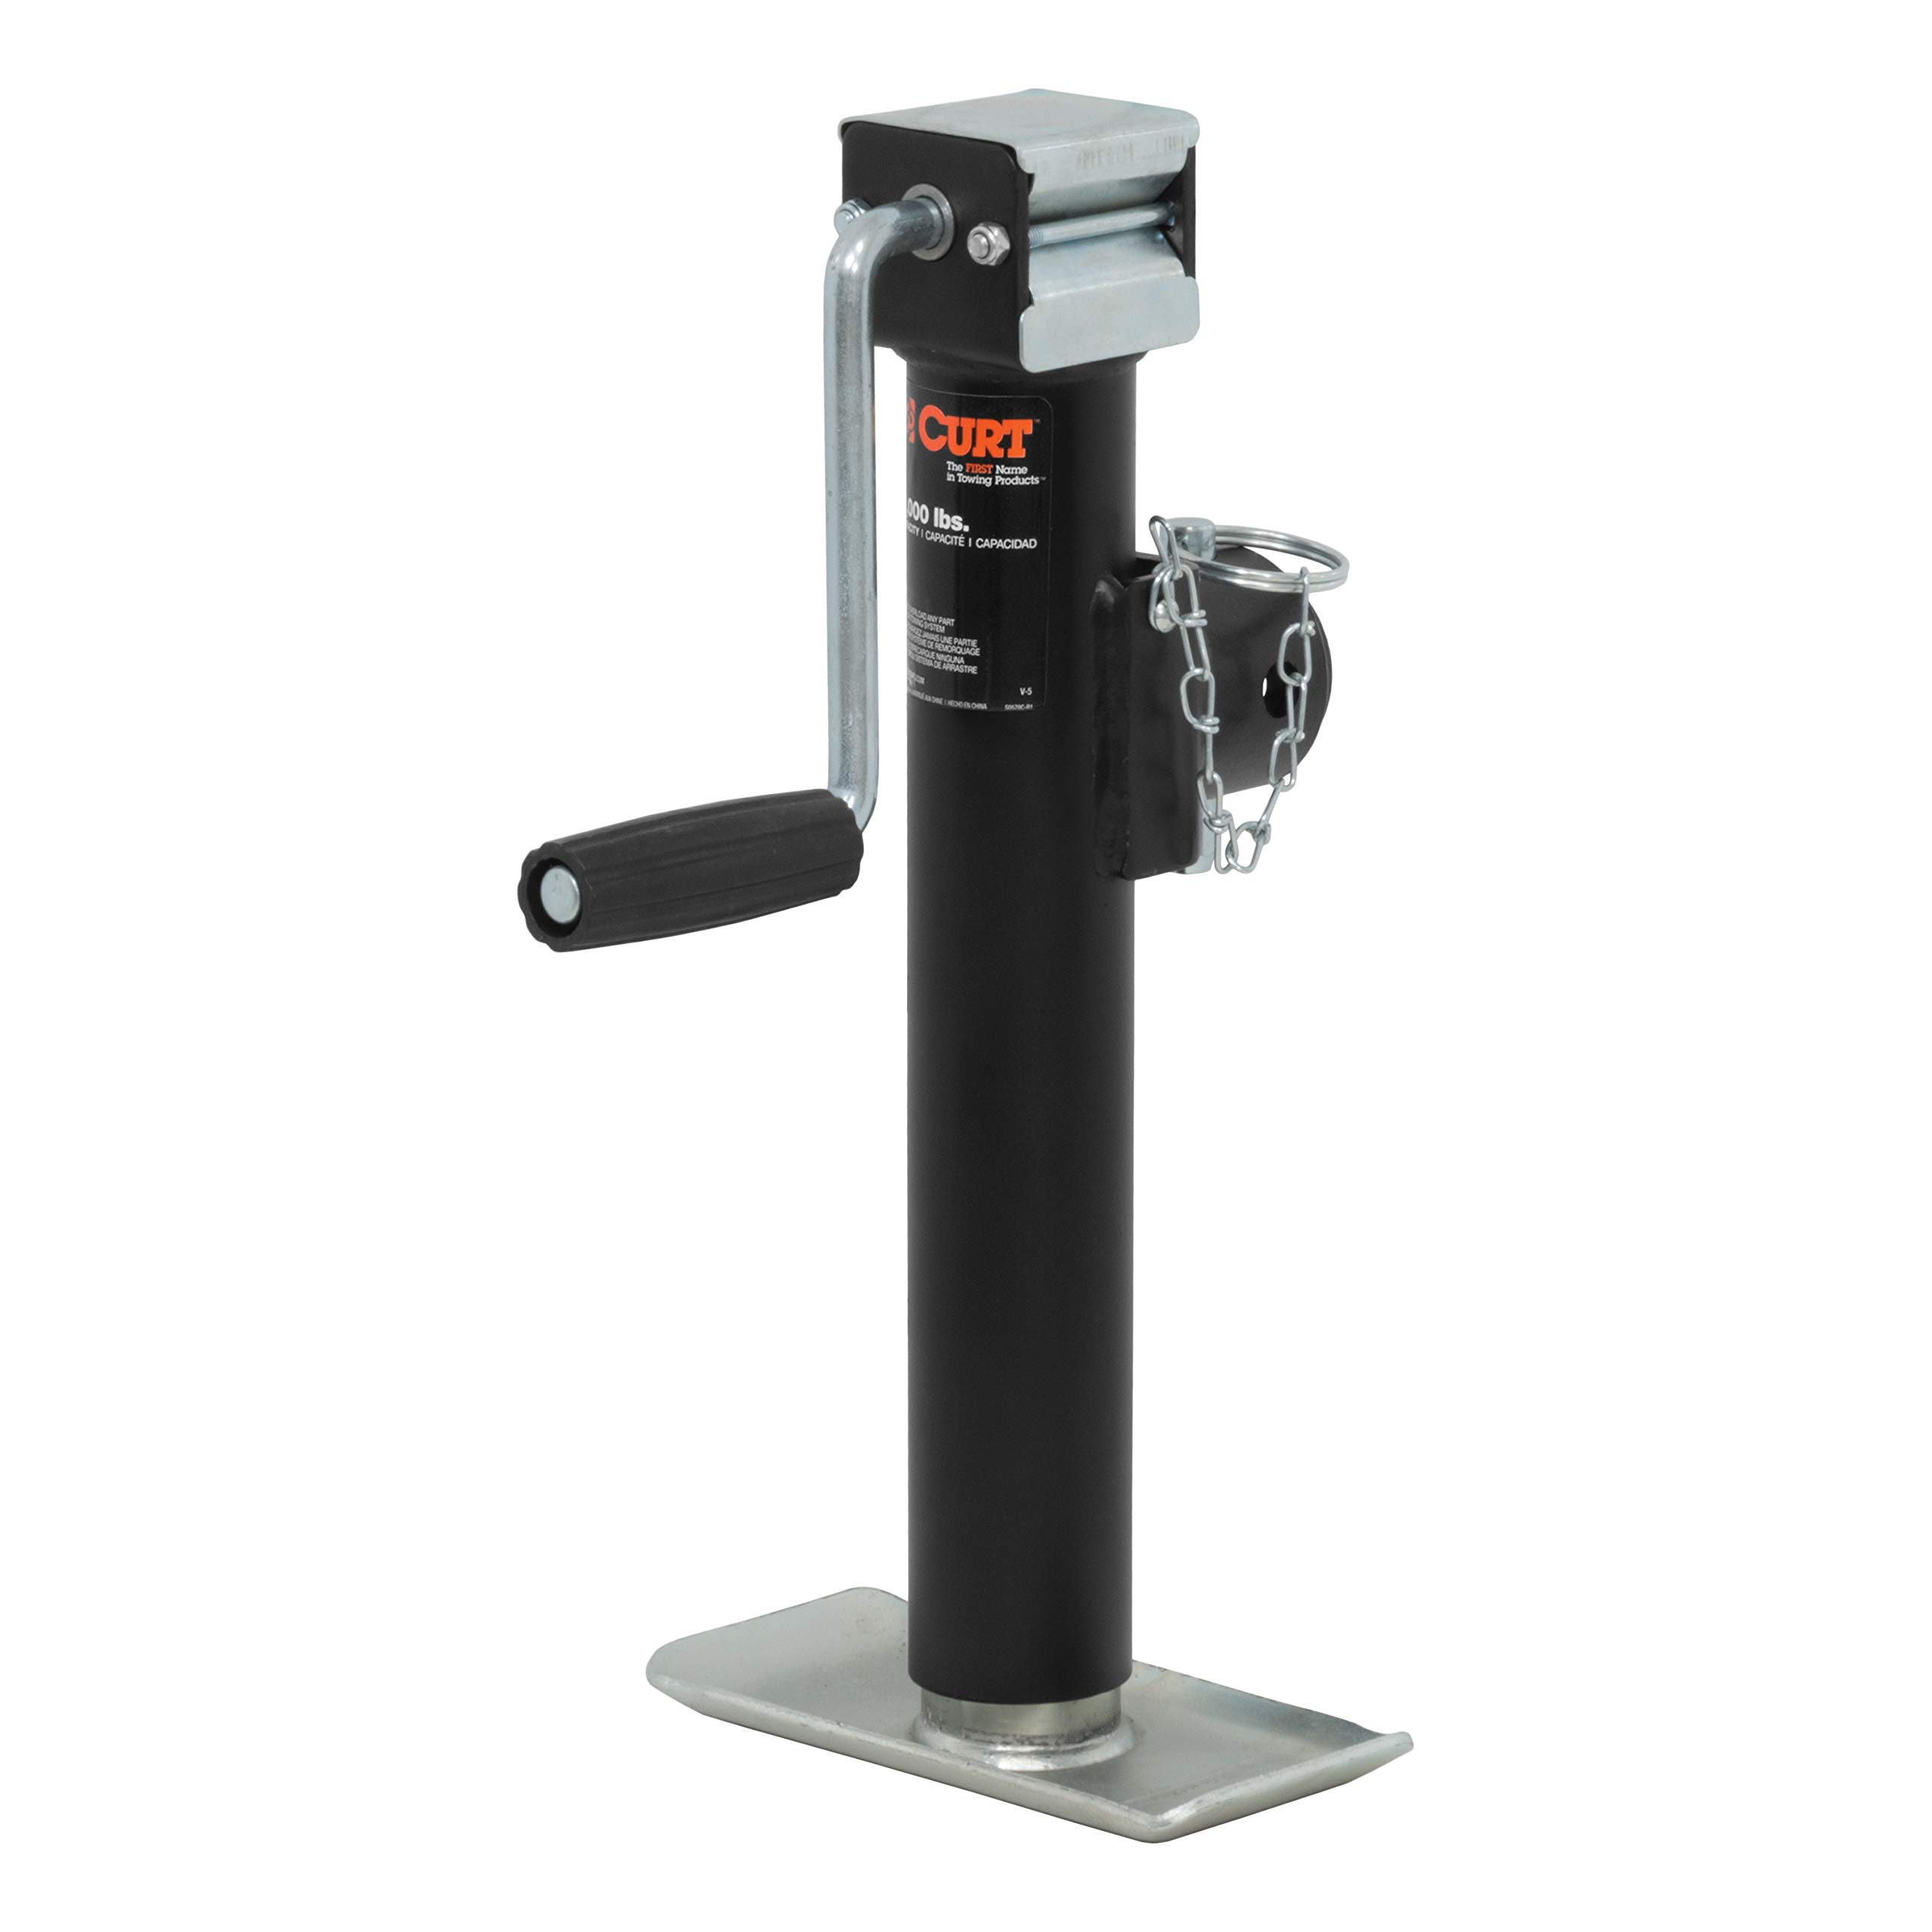 CURT 28321 Weld-On Pipe-Mount Swivel Trailer Jack 2,000 lbs, 10 Inches Vertical Travel by CURT